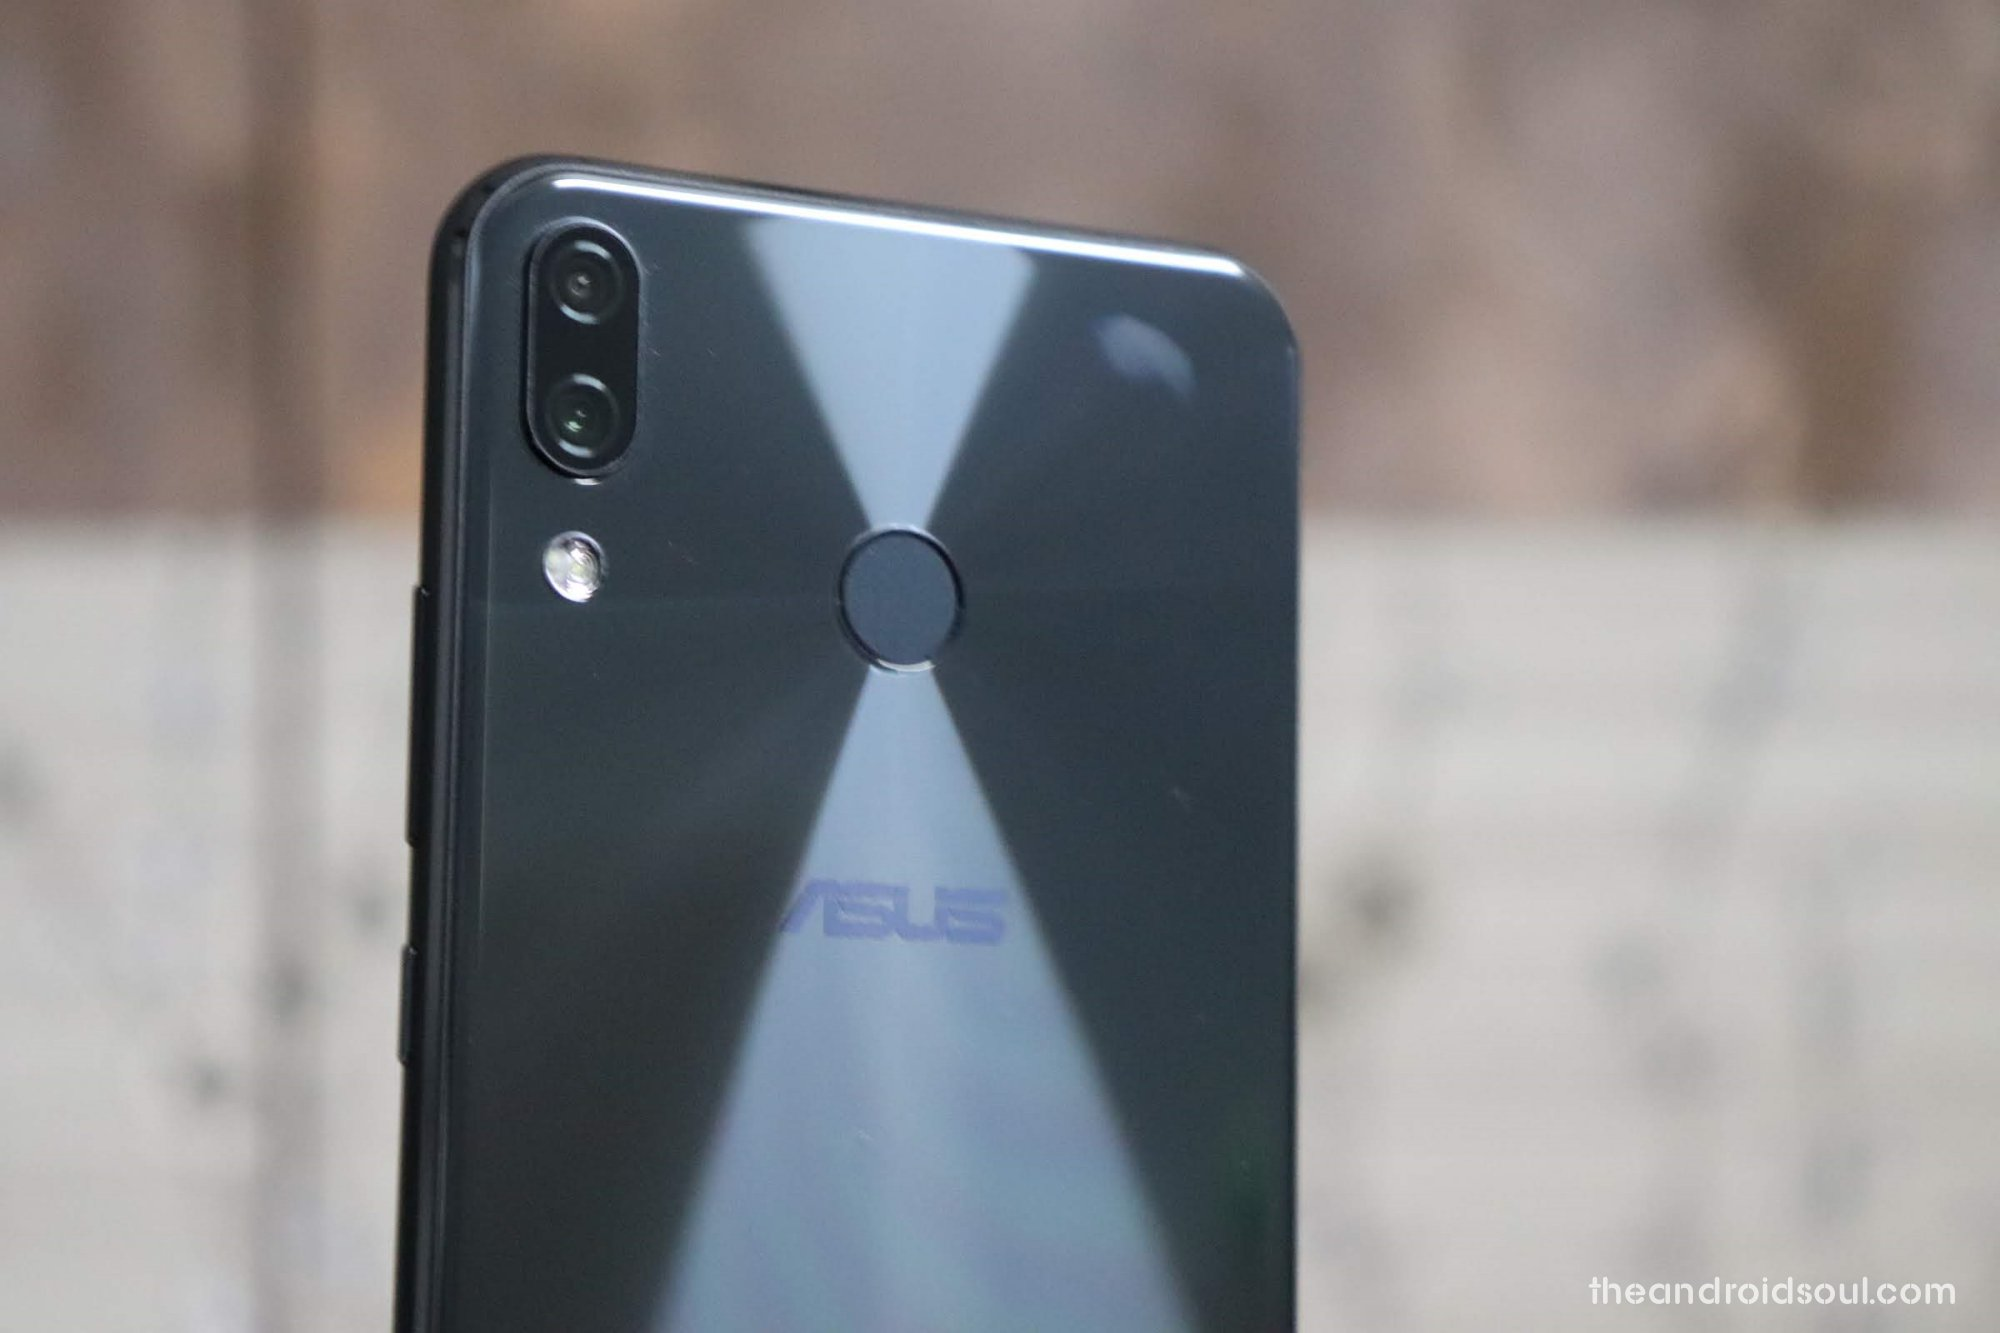 Asus Android 9 update